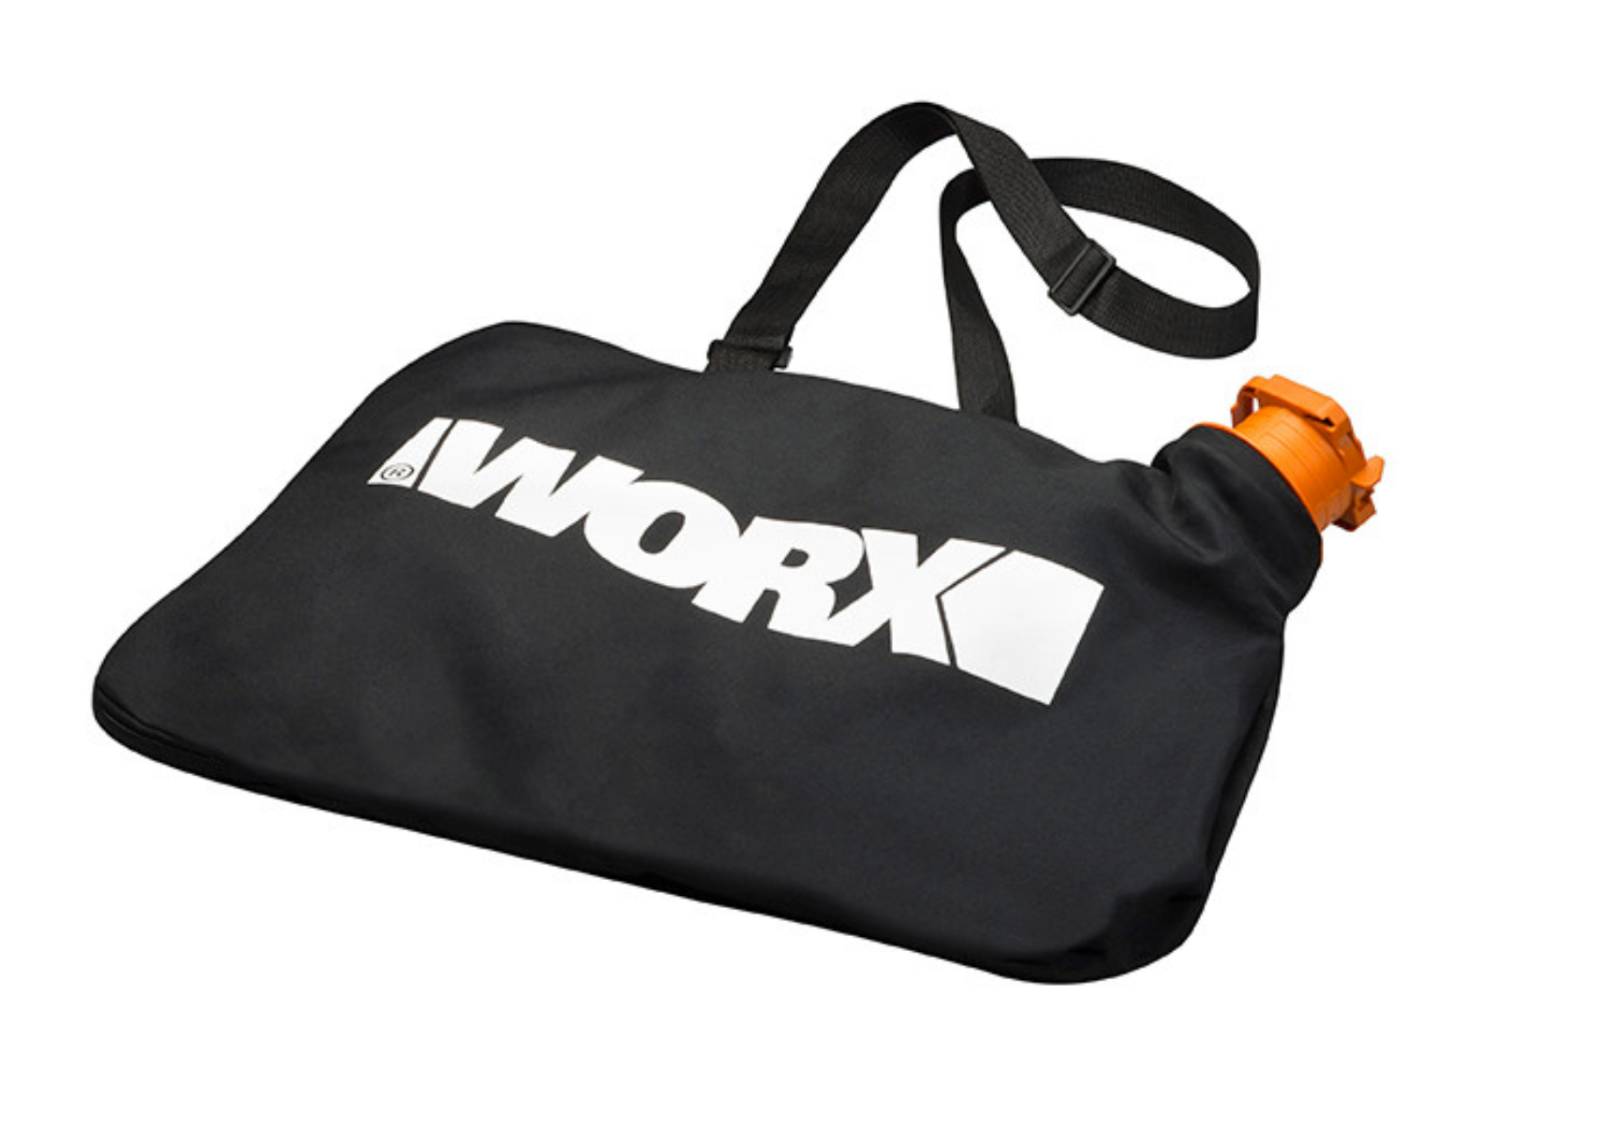 Worx Trivac Replacement Leaf Collection Bag Blowers For Mode